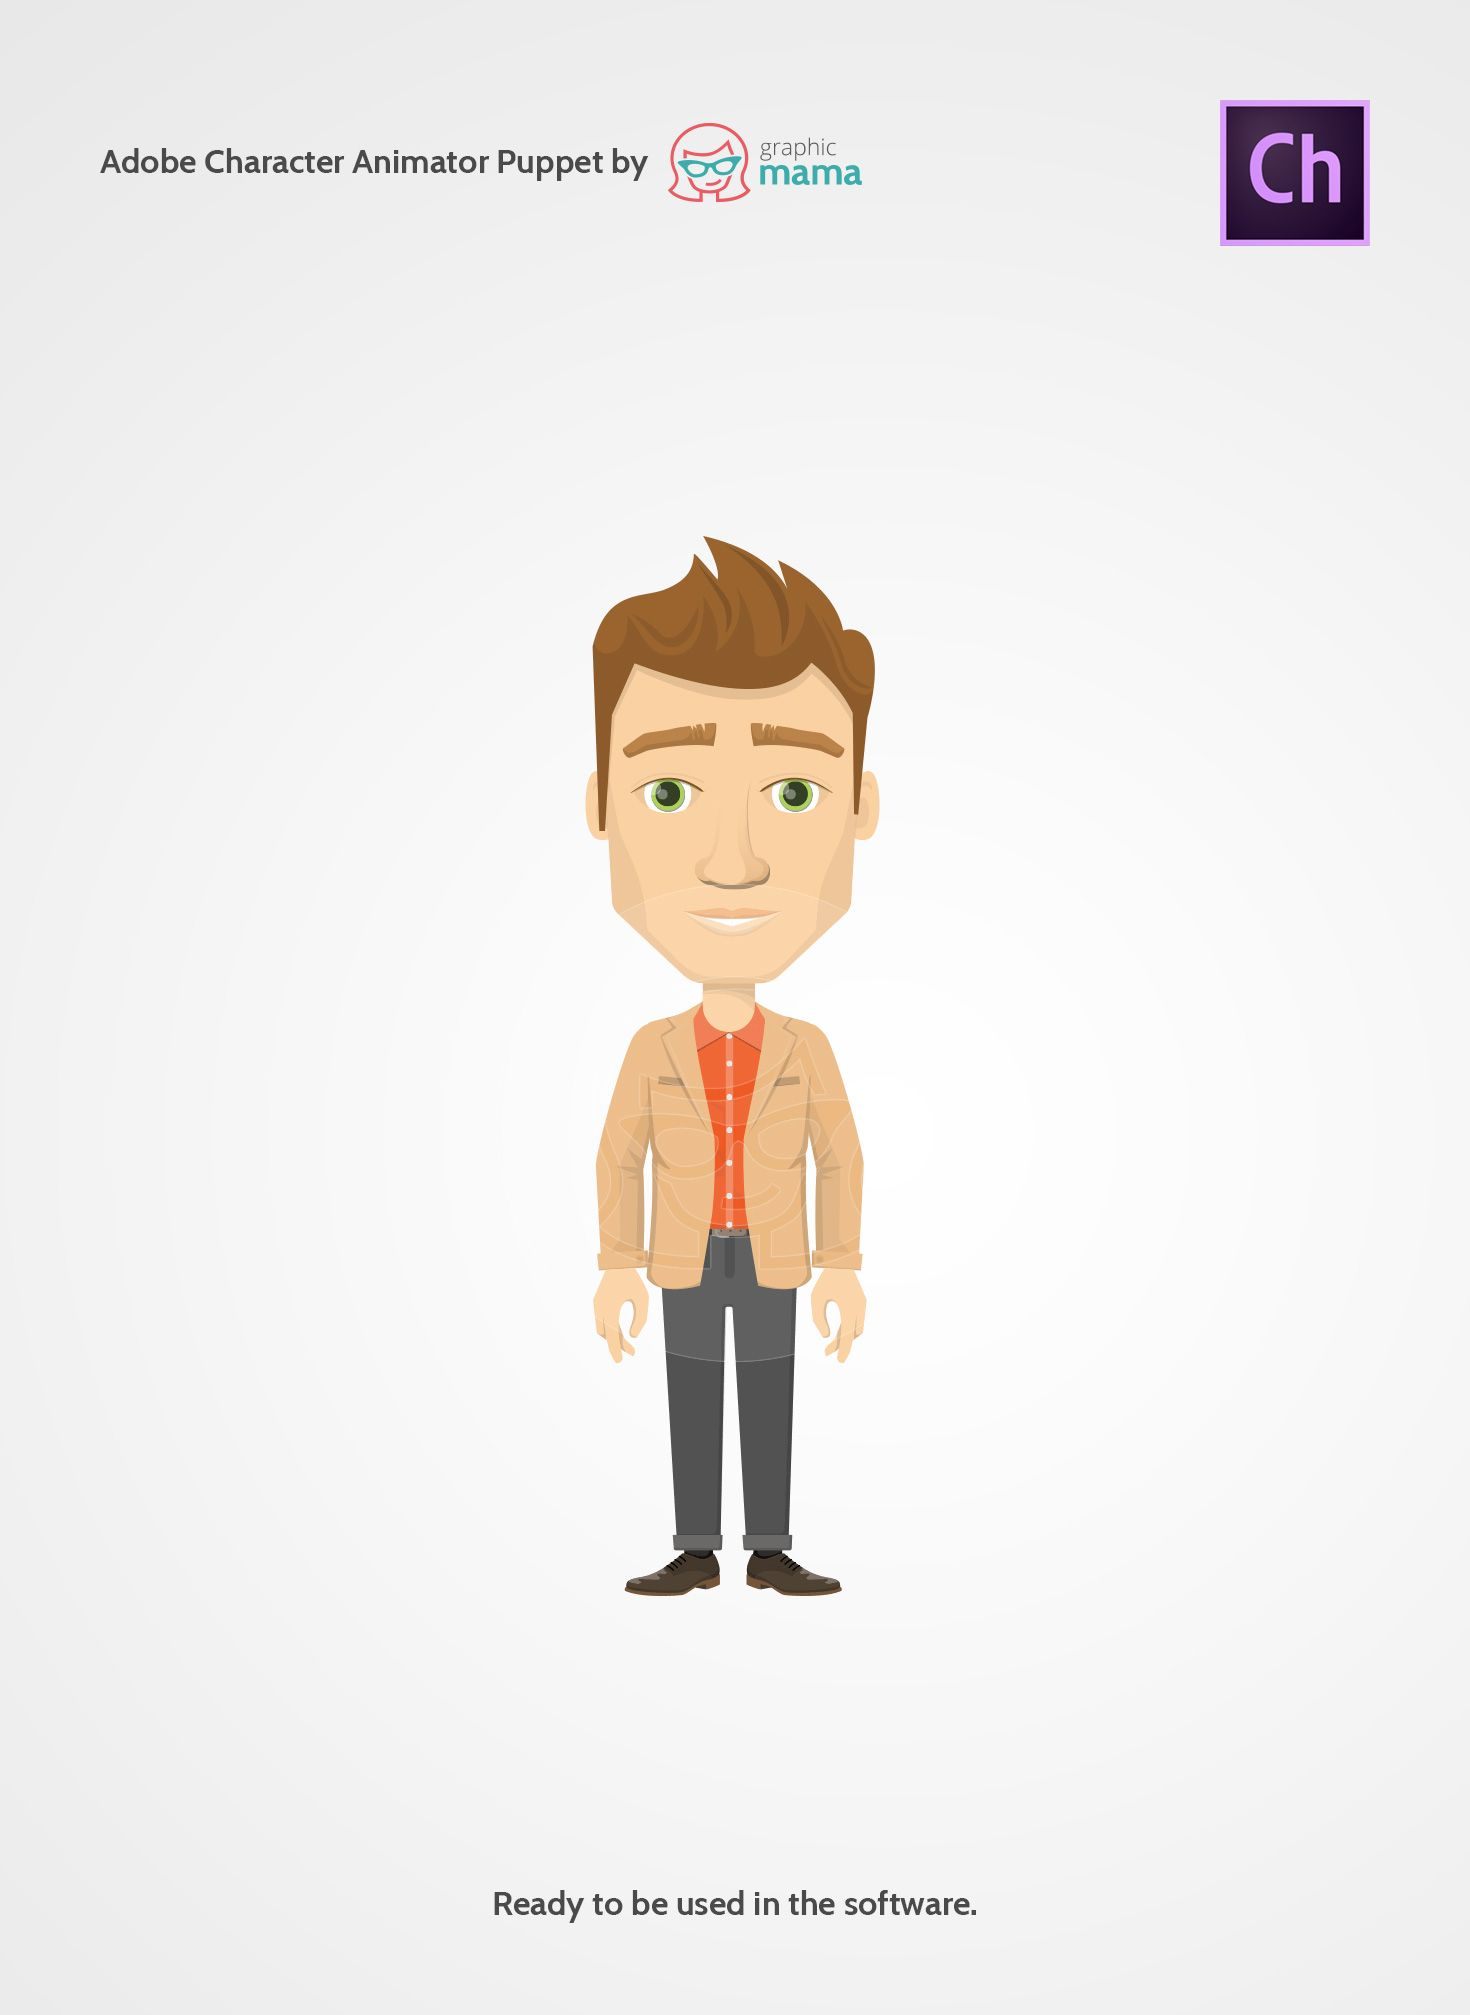 A business guy made by graphicmama as an adobe character